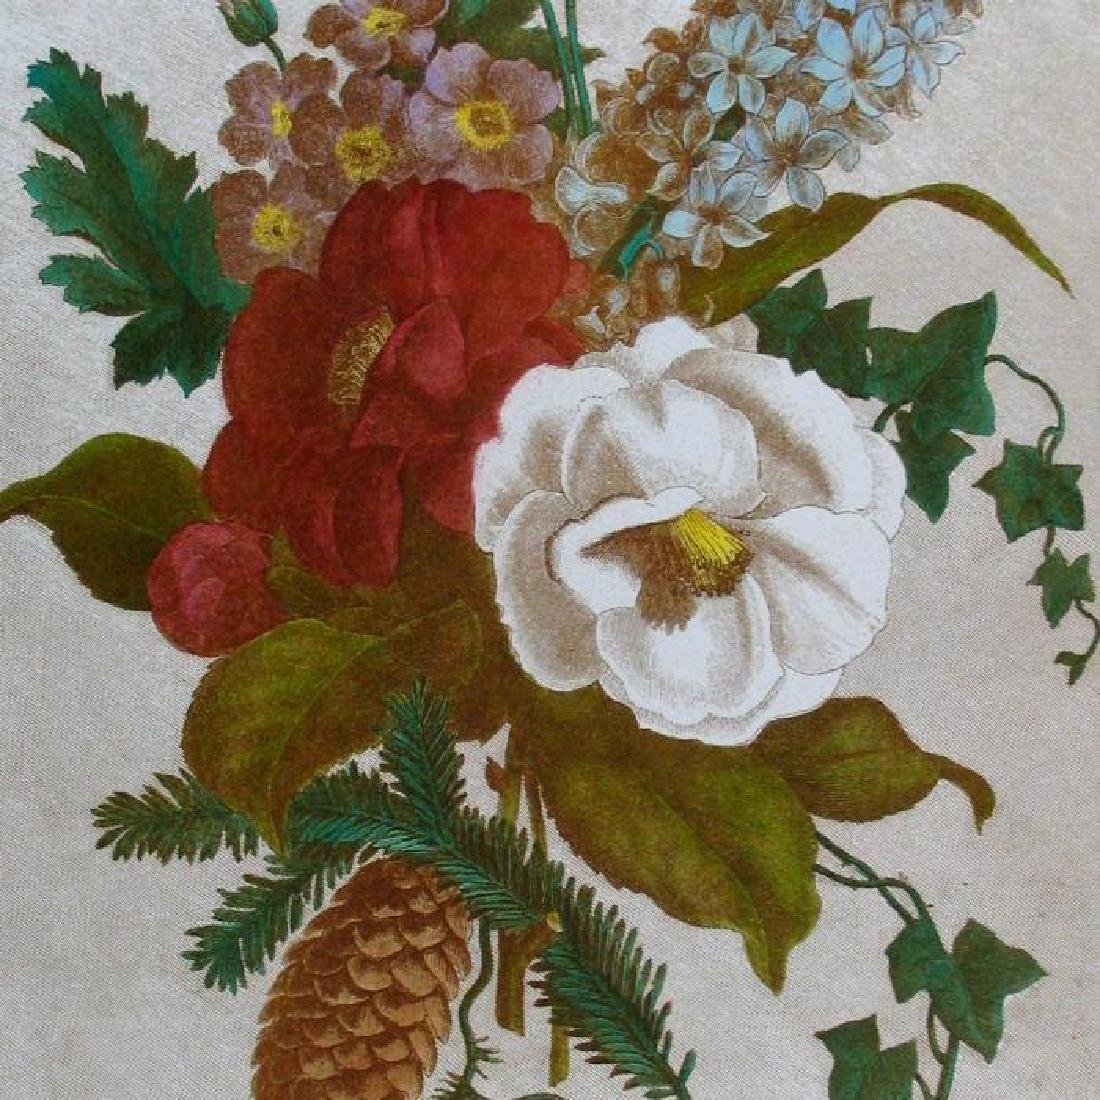 Floral Hand Colored Original Etching Signed & Numbered - 2